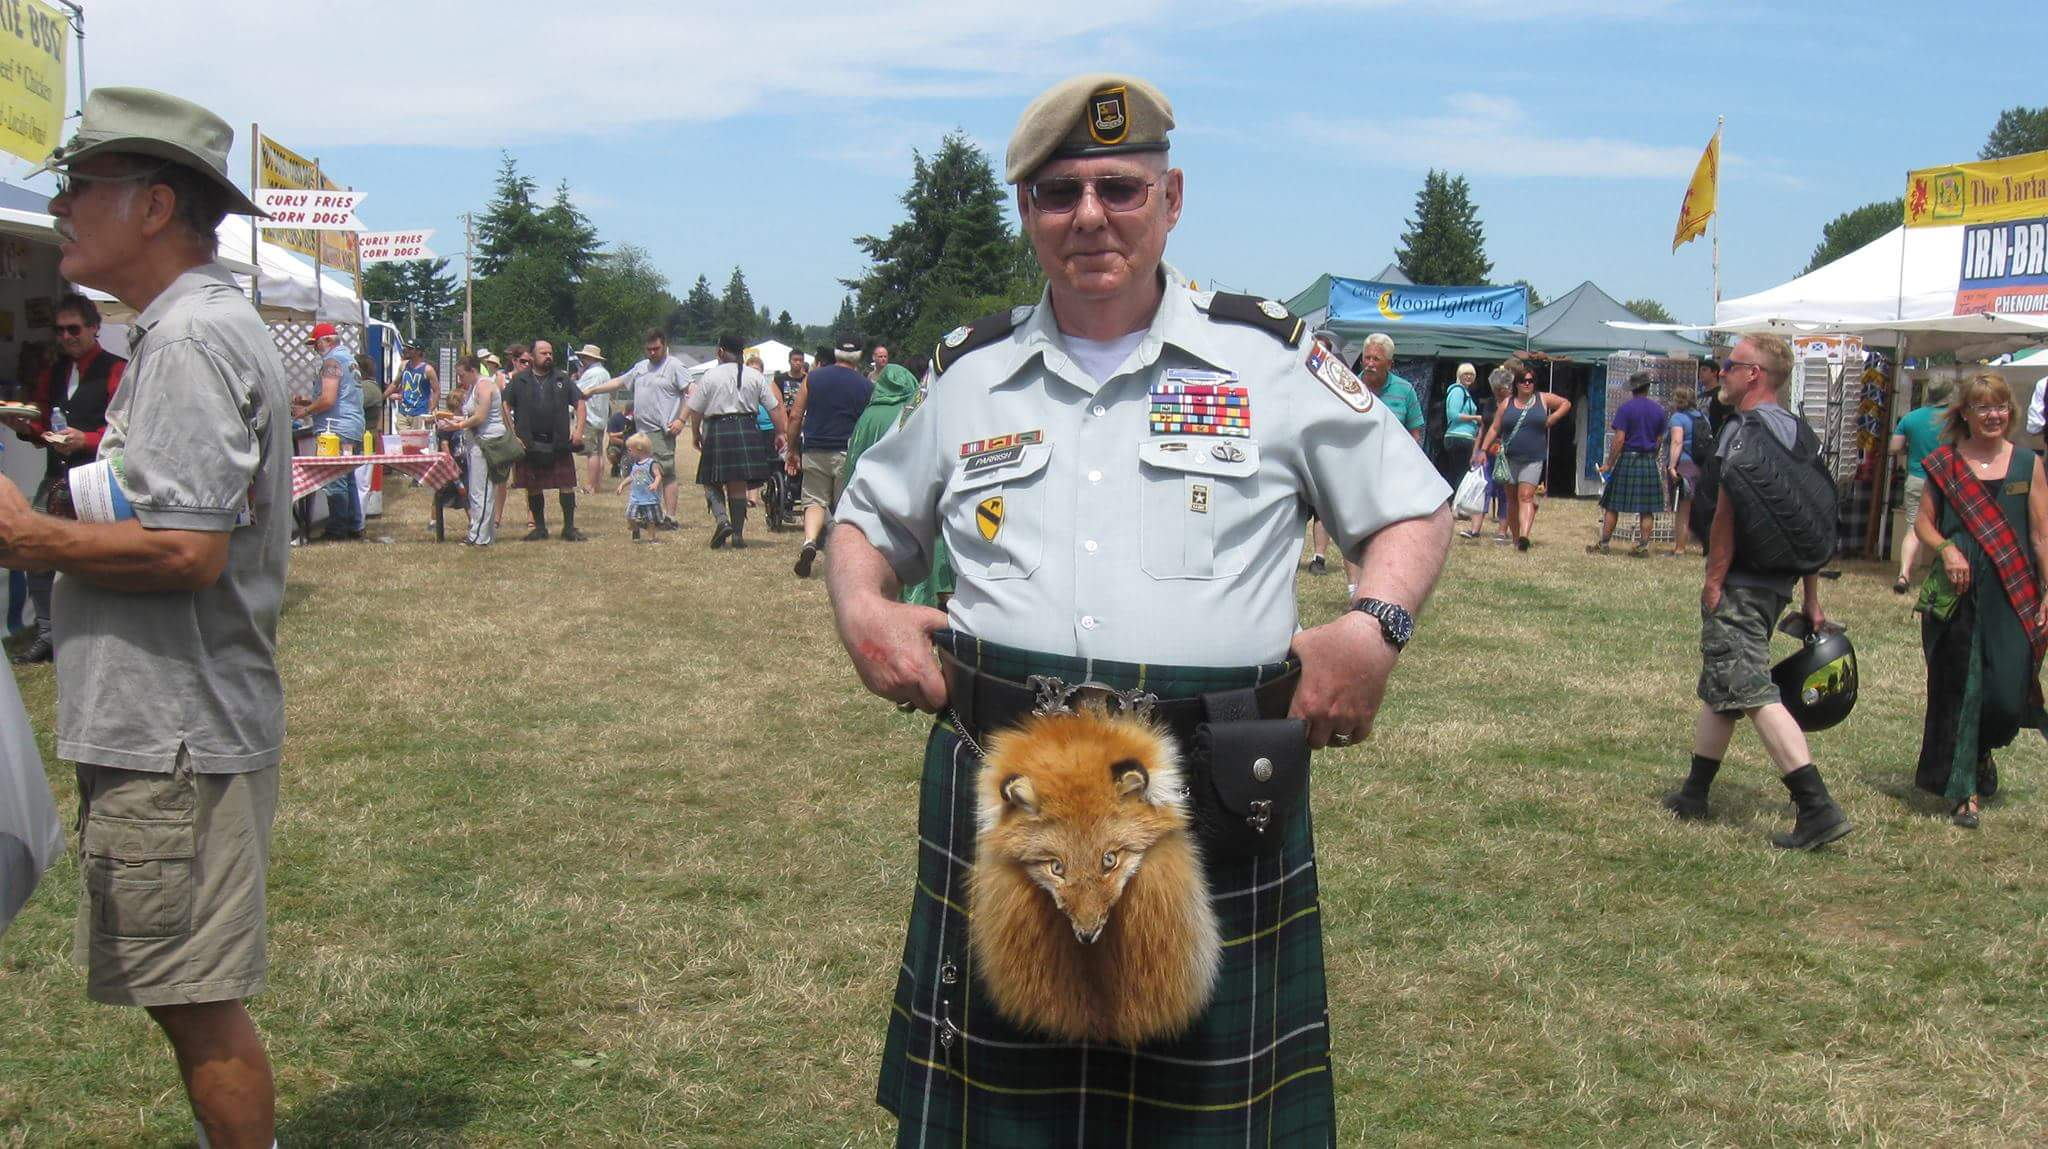 Scottish American Military Society